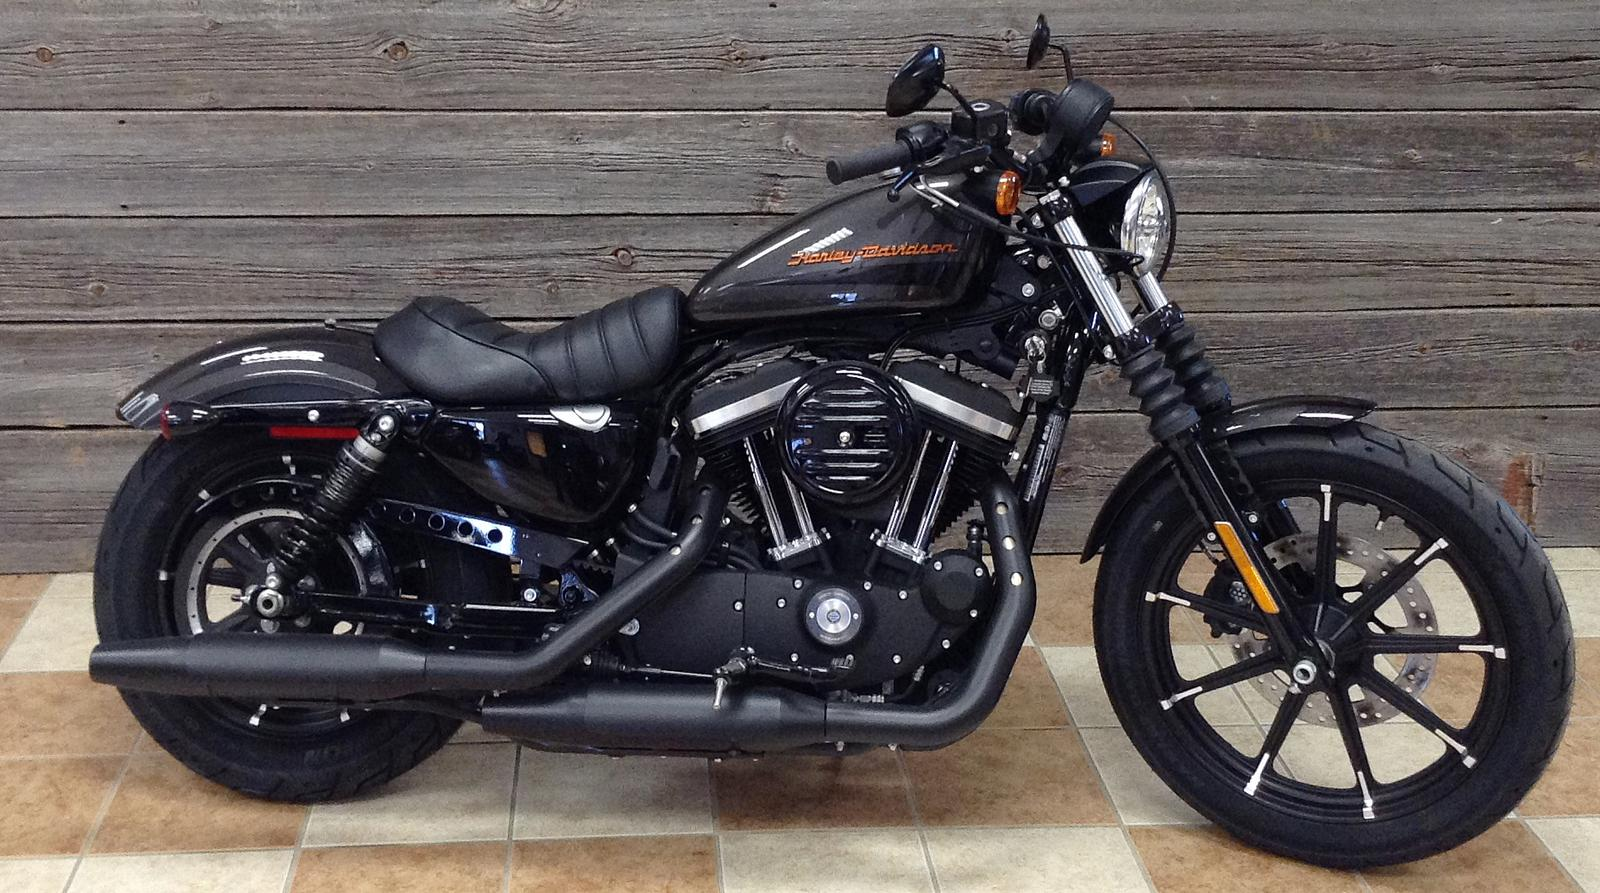 2019 Harley-Davidson® Iron 883™ - Two-Tone Custom Option for sale in